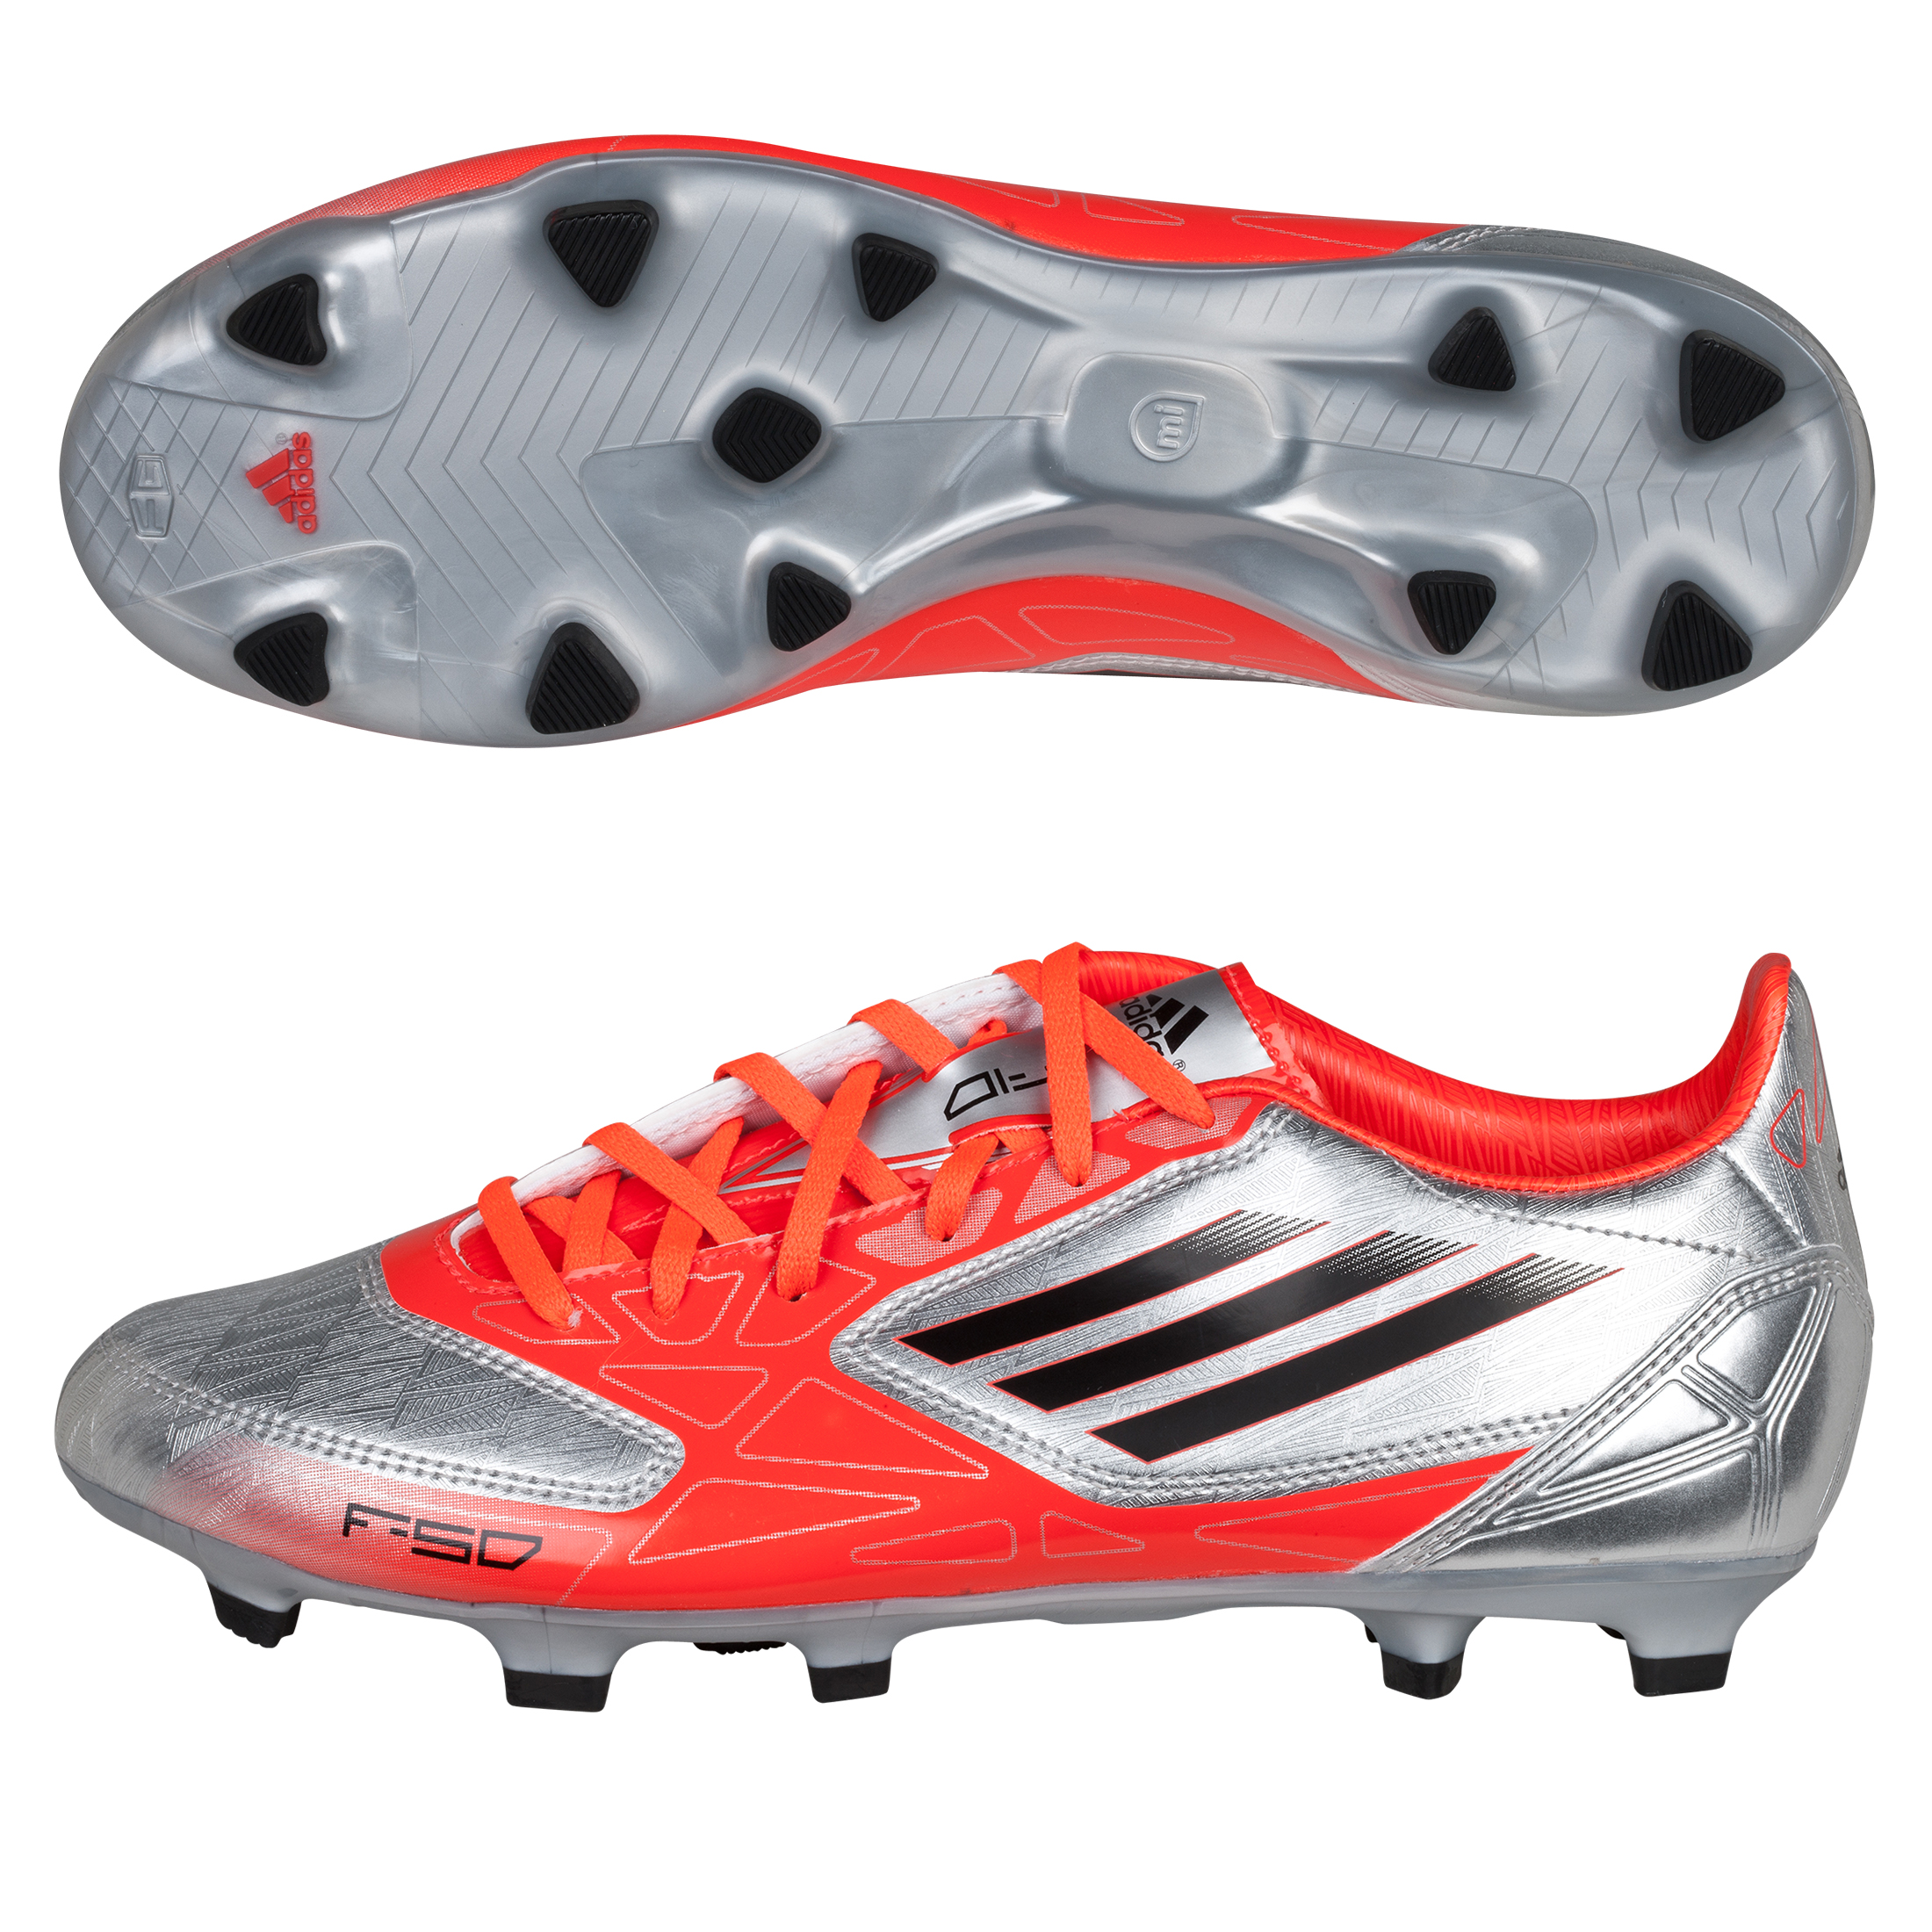 Adidas F10 TRX Firm Ground Football Boots - Metallic Silver/Black/Infrared